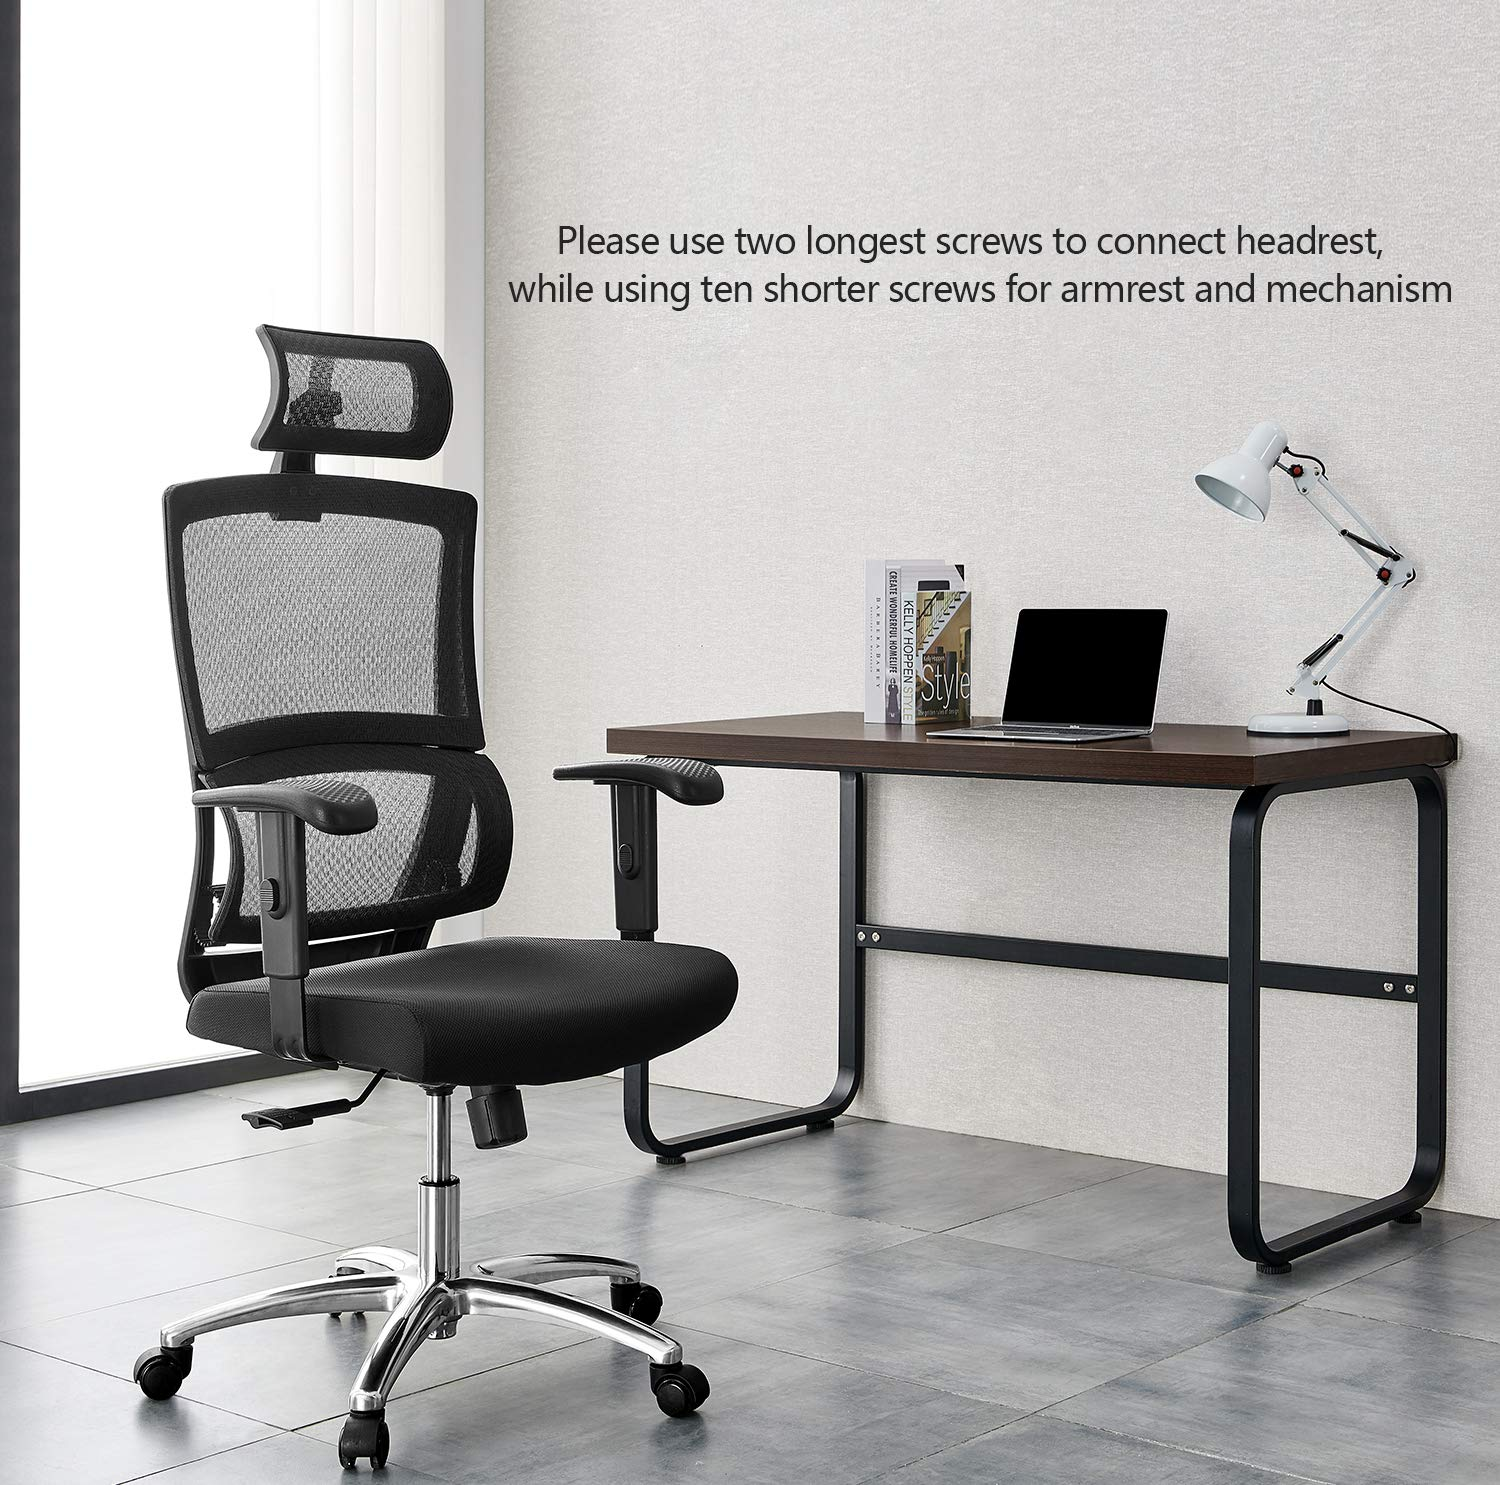 Ticova Ergonomic Office Chair with Unique Elastic Ring Lumbar Support and Thick Seat Cushion- High Back Mesh Chair with Adjustable Headrest and Armrest - Reclinable Computer Desk Chair by Ticova (Image #6)